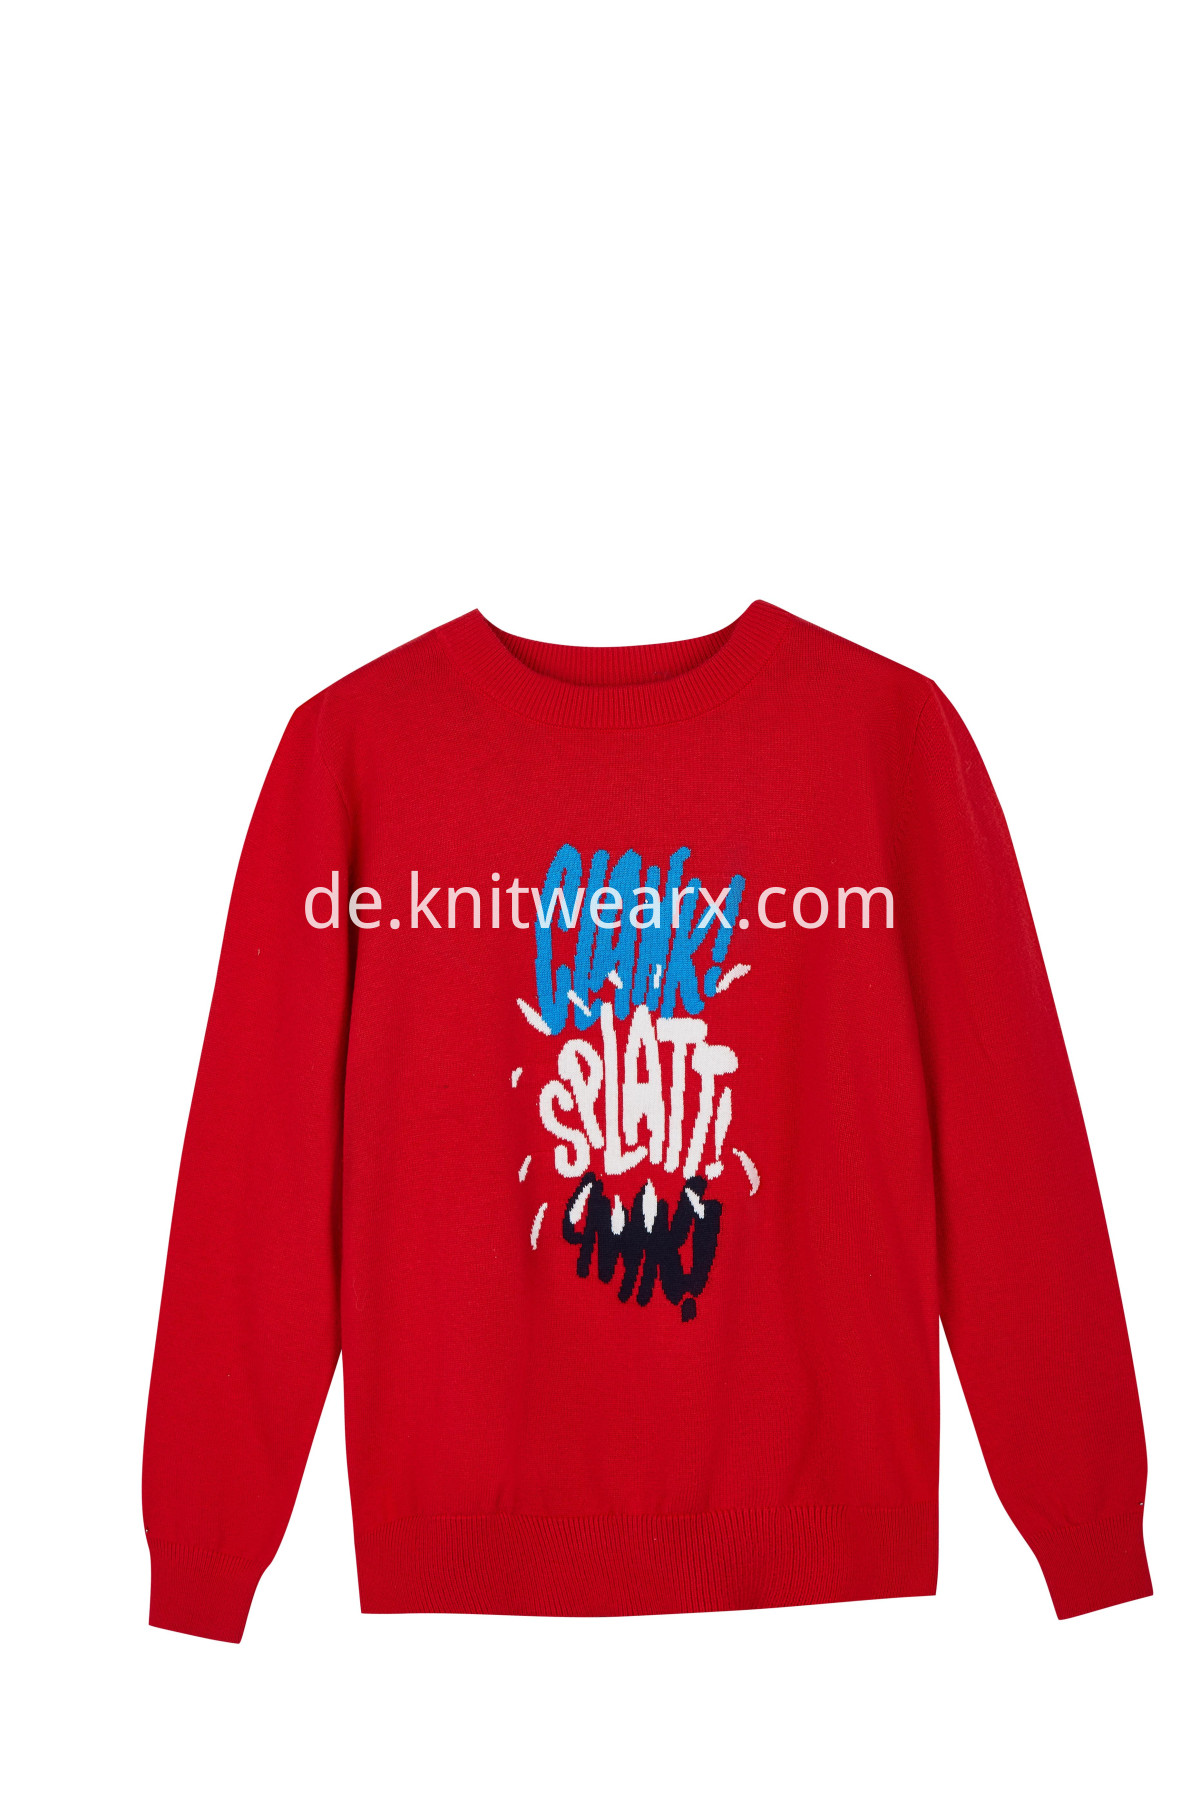 Boy's Funny Letter Sweater Cotton Crew-neck Kintted Pullover